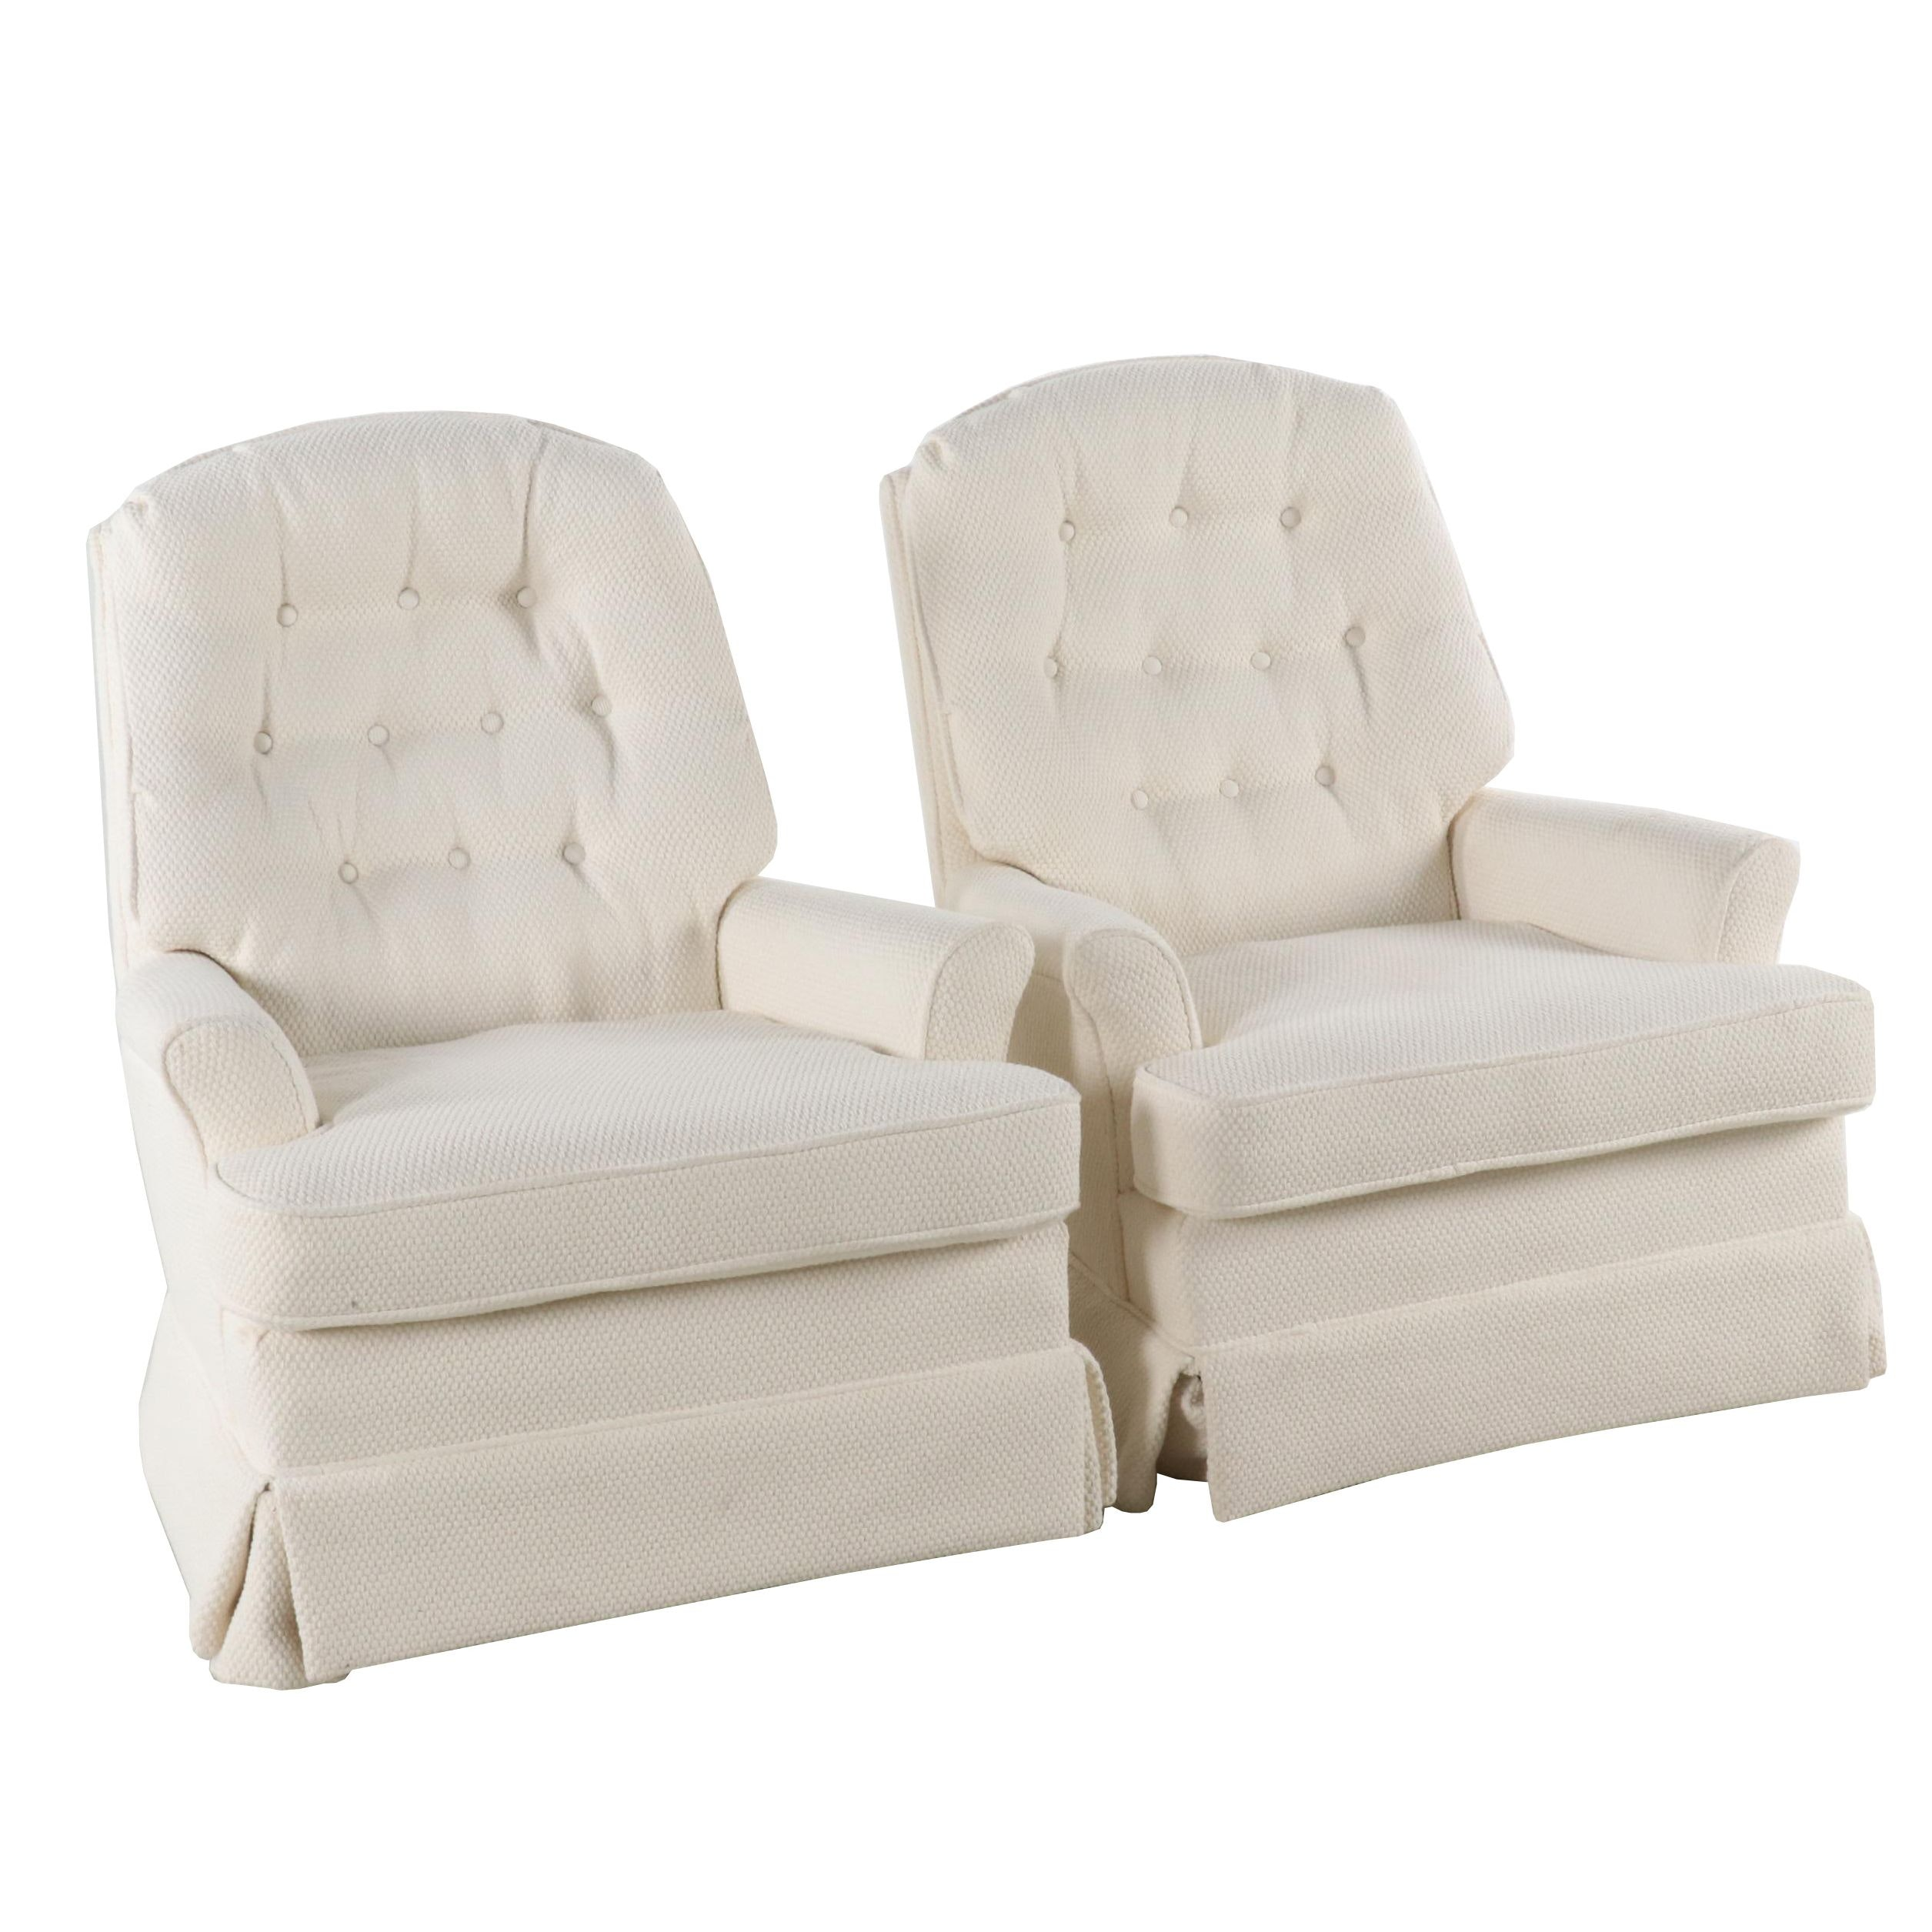 Pair of Upholstered Rocking Armchairs, Late 20th Century